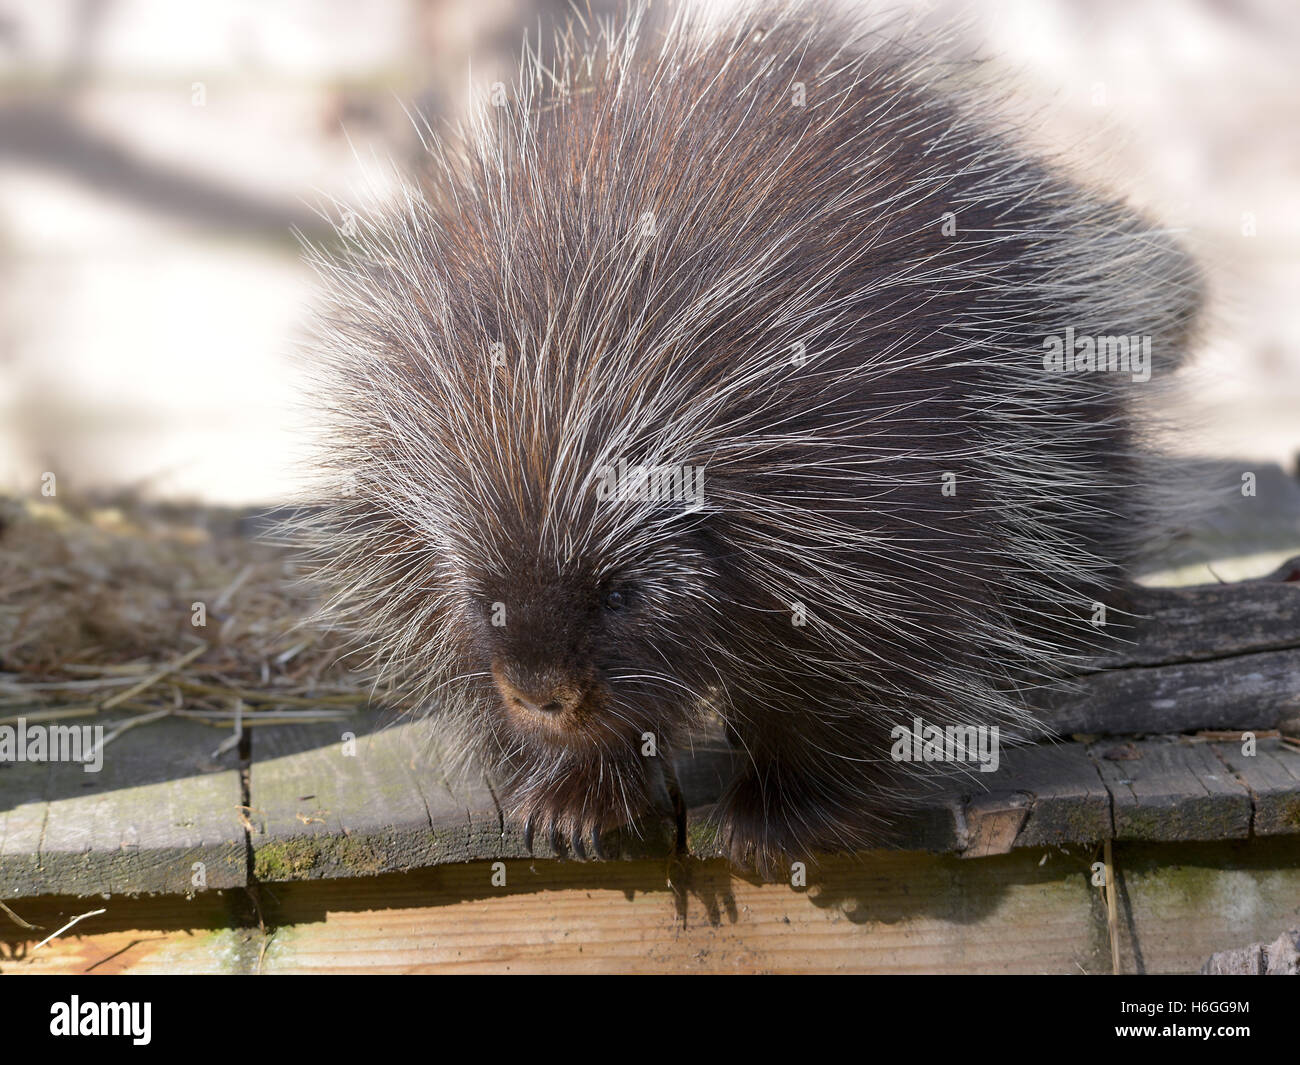 The North American porcupine (Erethizon dorsatum), also known as the Canadian porcupine or common porcupine, on Stock Photo